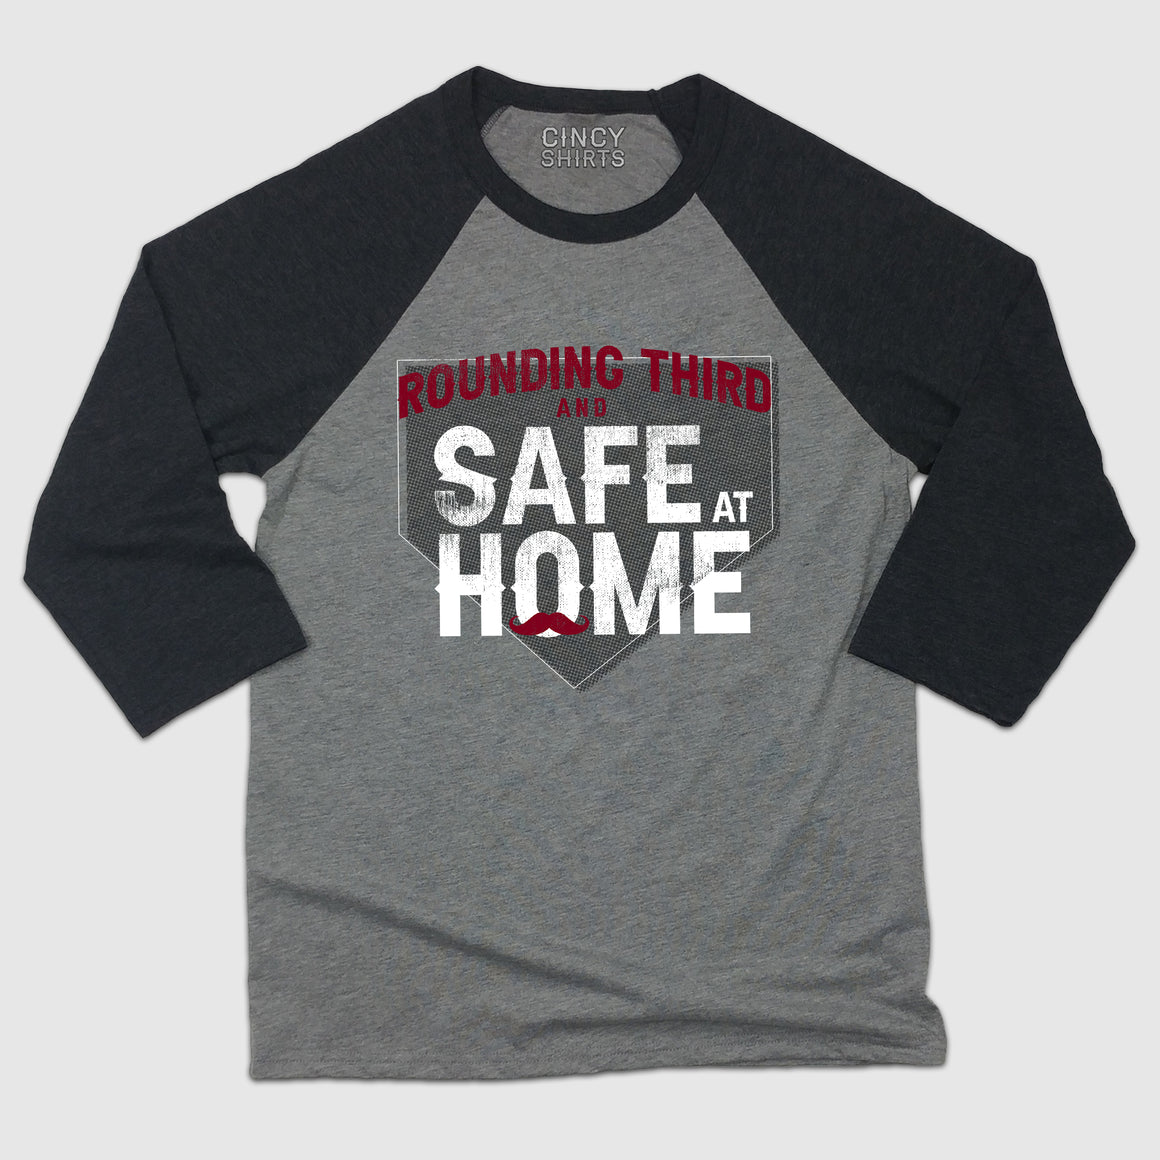 Rounding Third And Safe At Home - Cincy Shirts